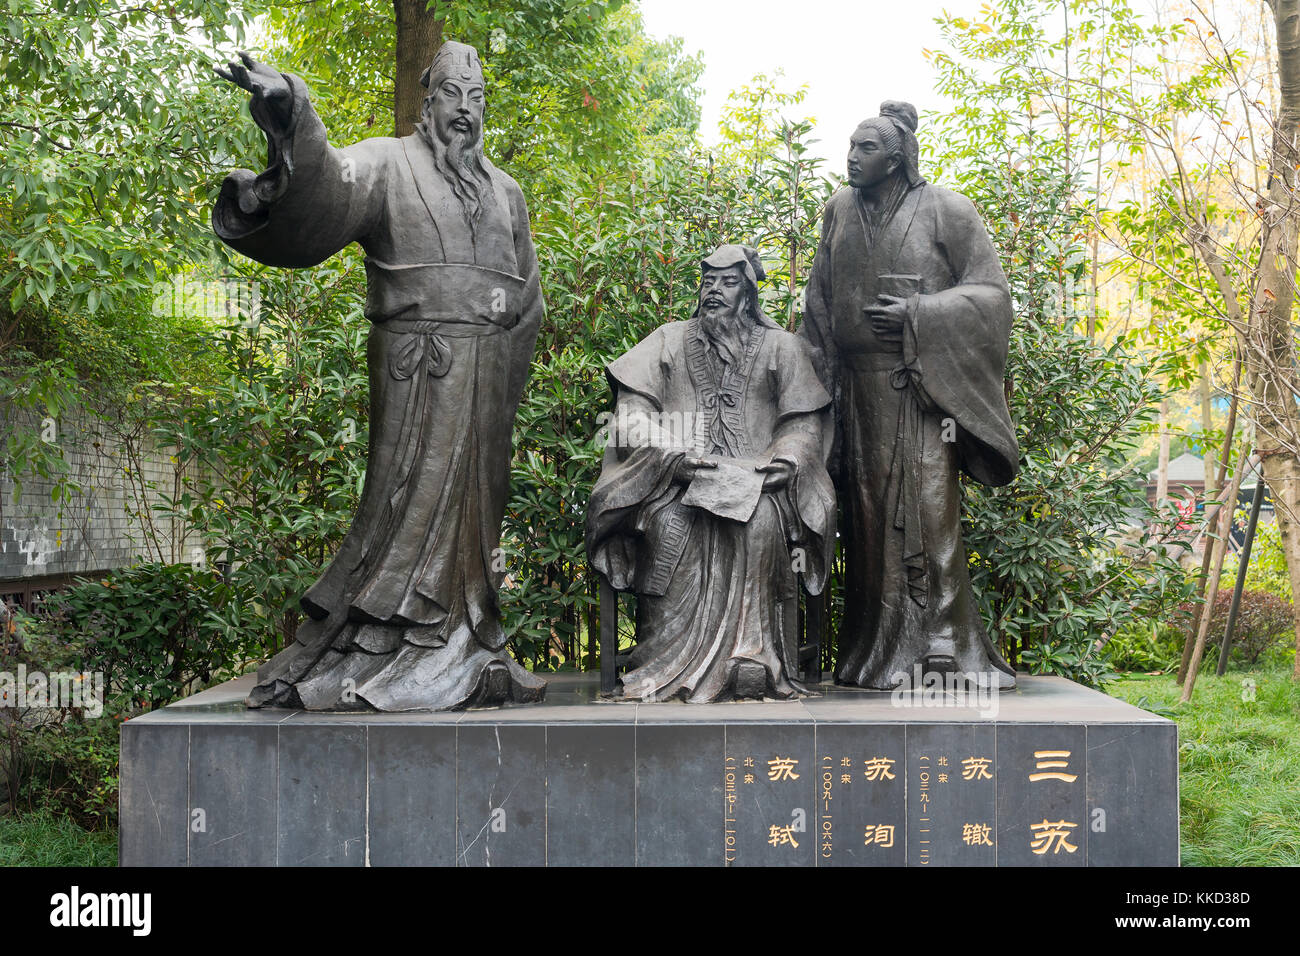 SuChe SuXun SuShi chinese poets statues - Stock Image